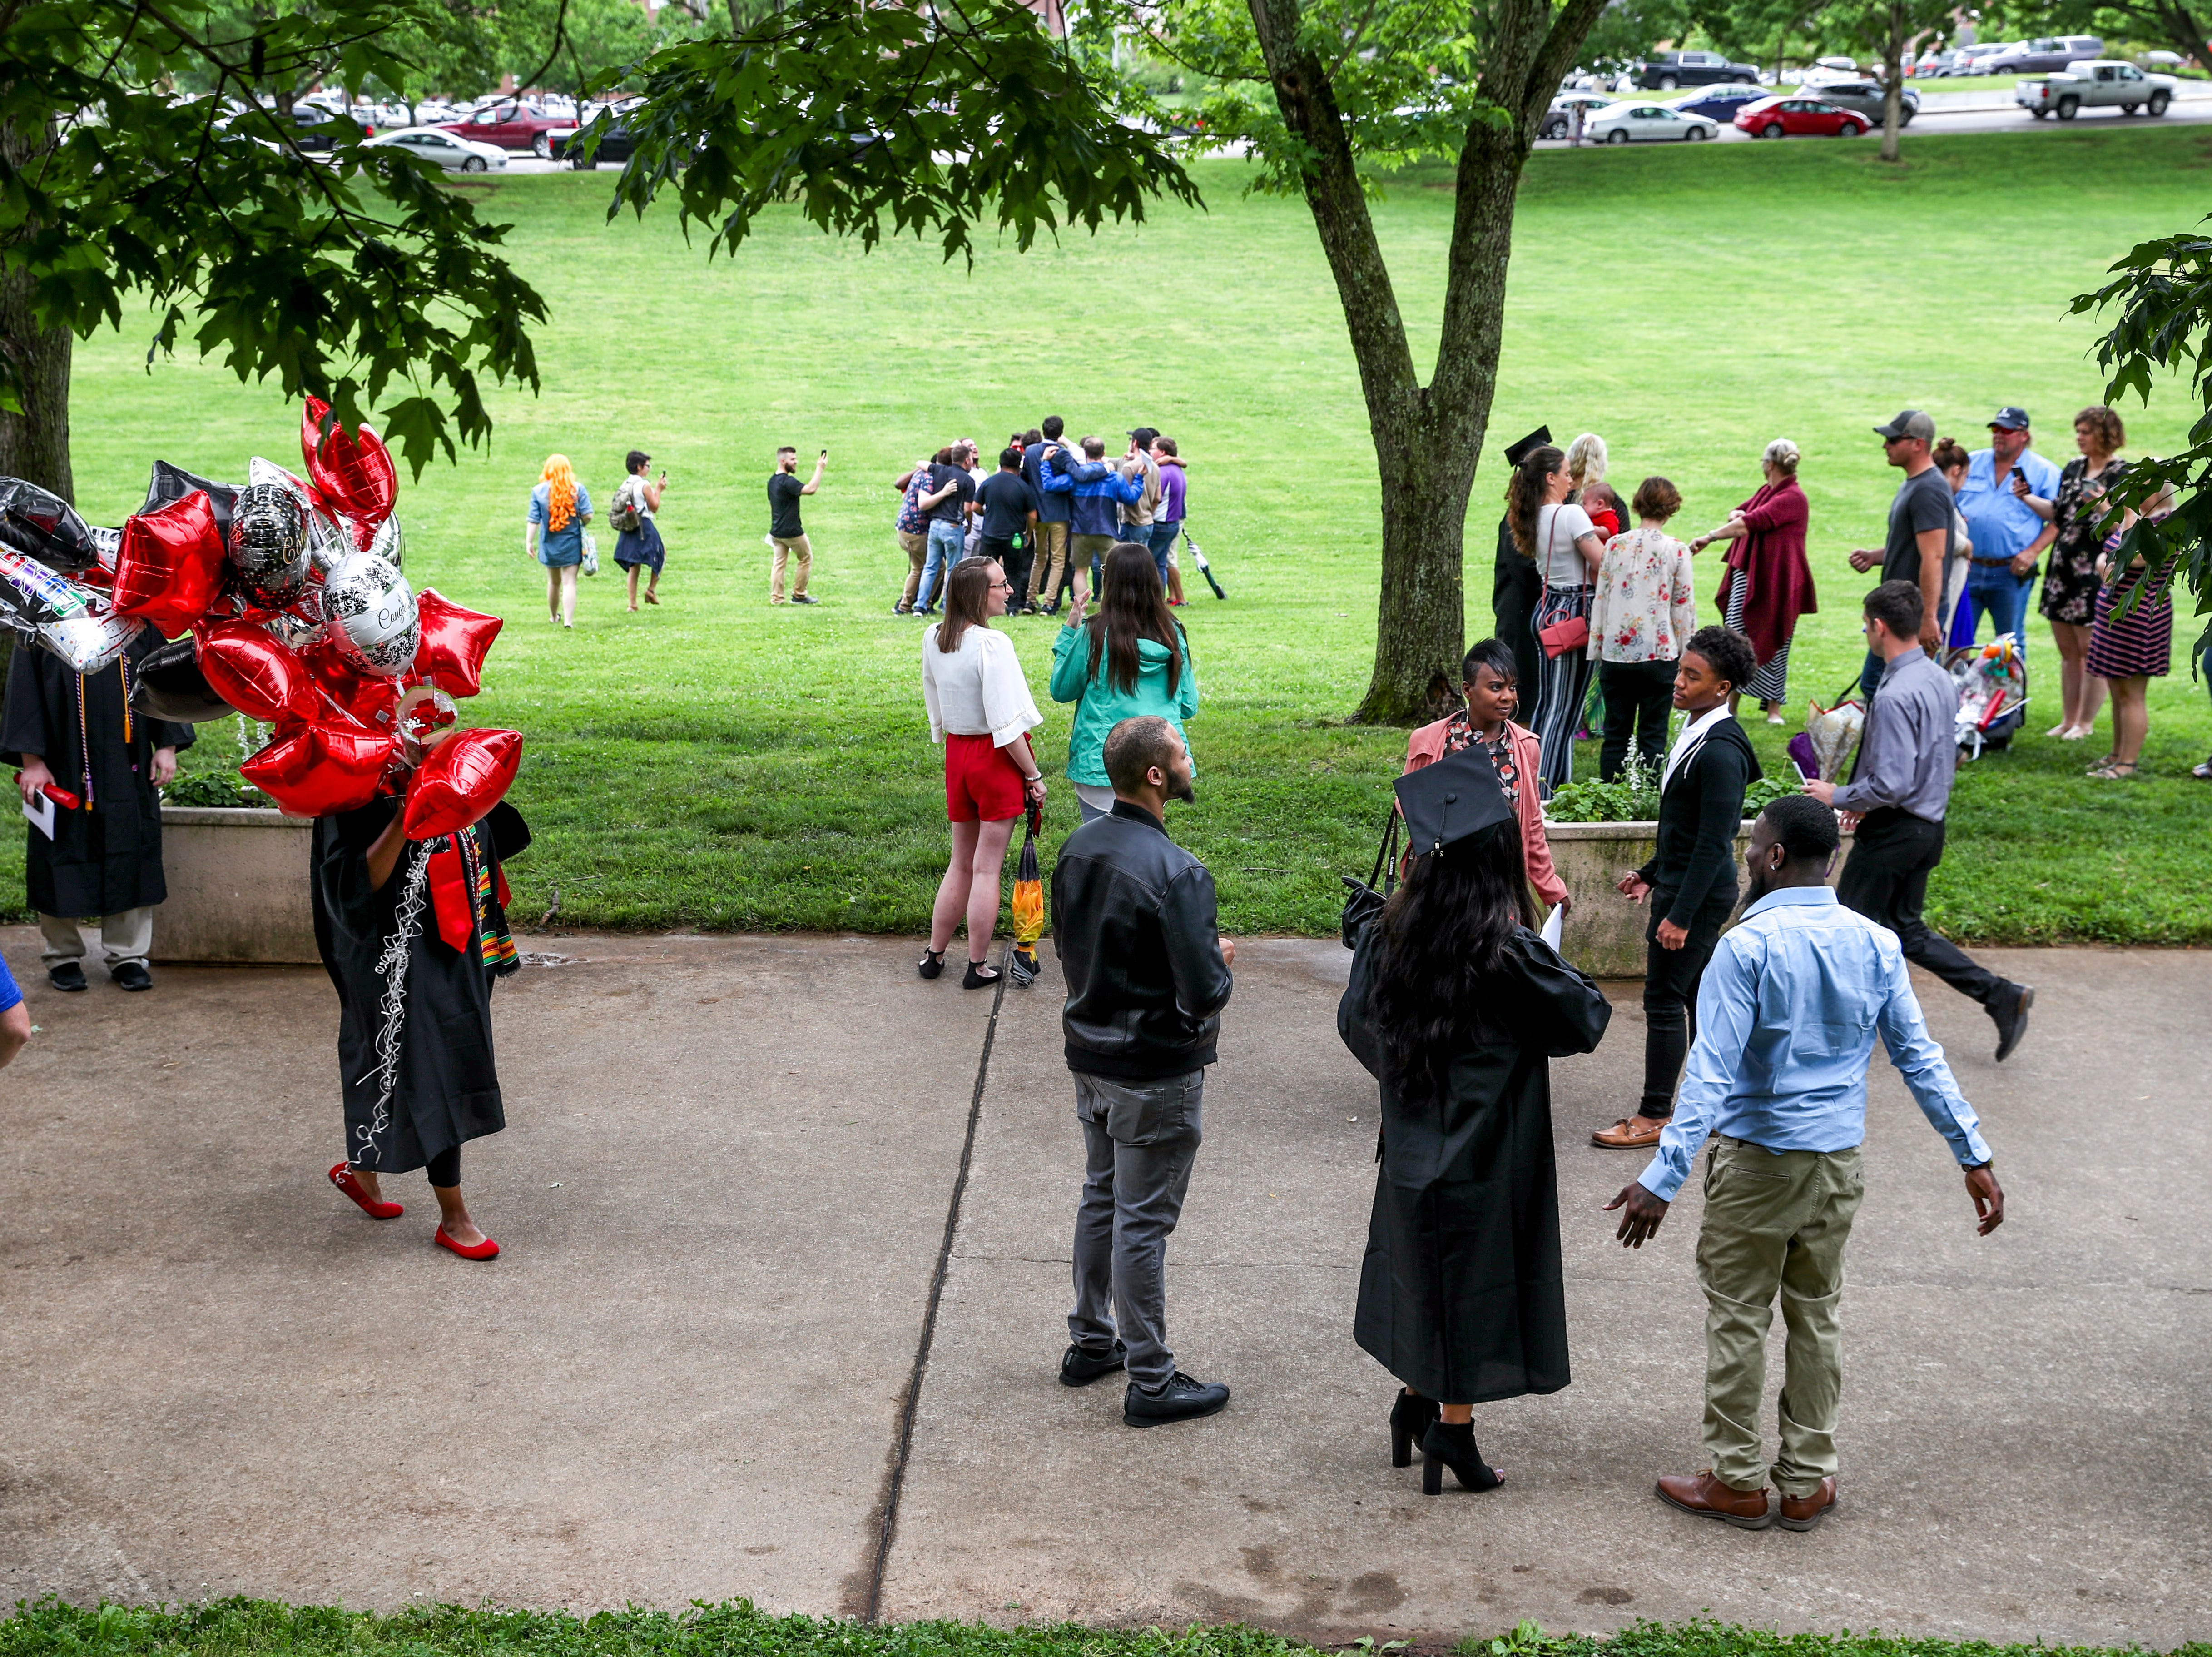 Students mingle with friends and family at the Austin Peay spring commencement ceremony 2019 for College of Business and College of STEM at Winfield Dunn Center in Clarksville, Tenn., on Friday, May 3, 2019.